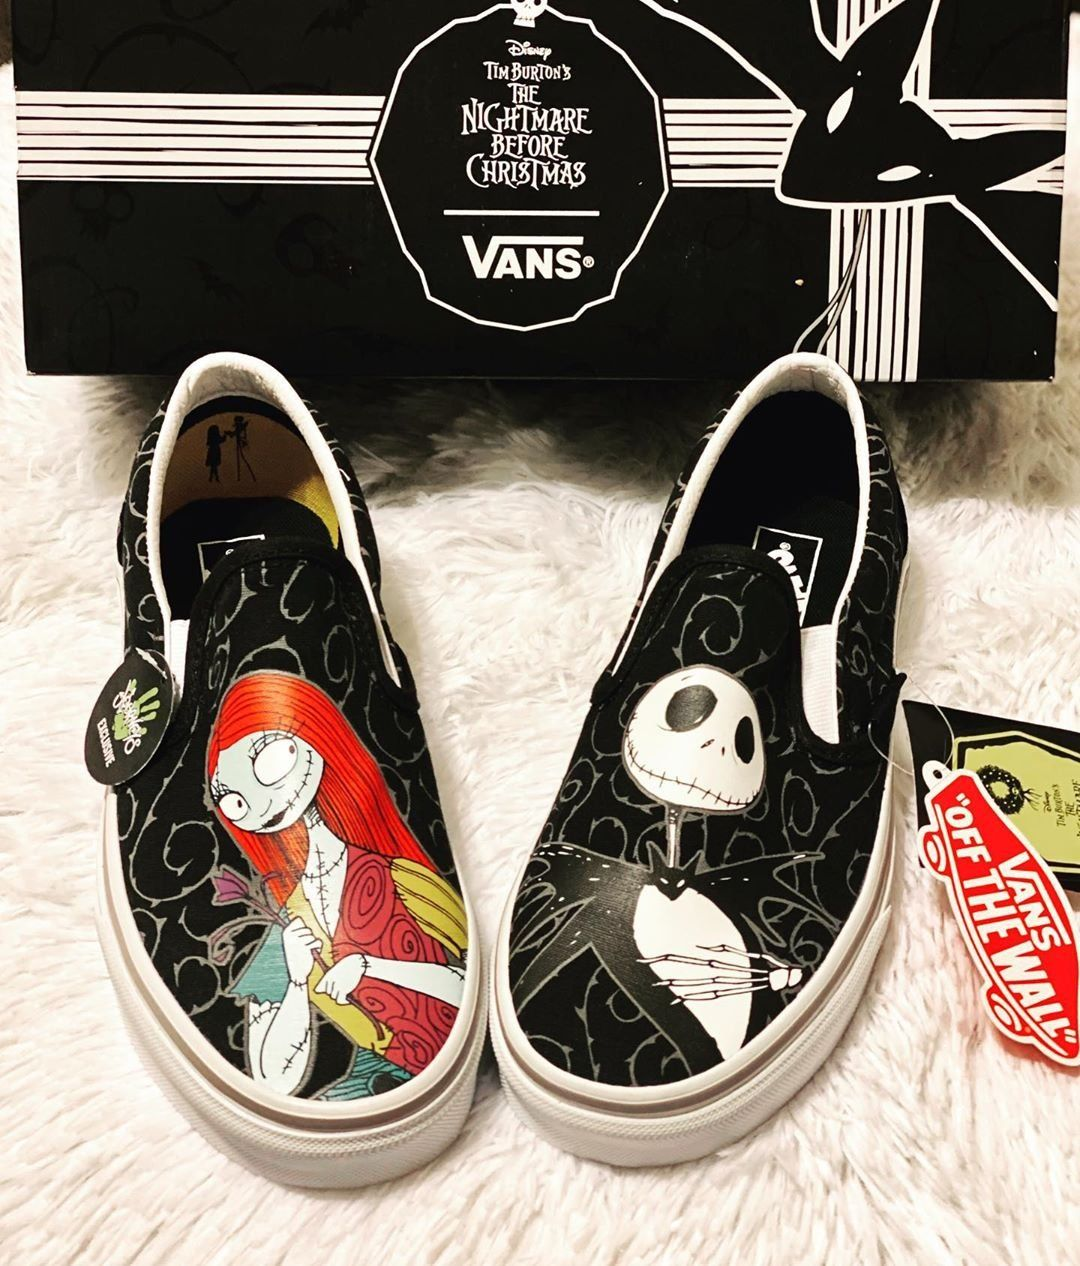 Vans Christmas Collection 2020 The Nightmare Before Christmas x Vans Collection in 2020 | Vans